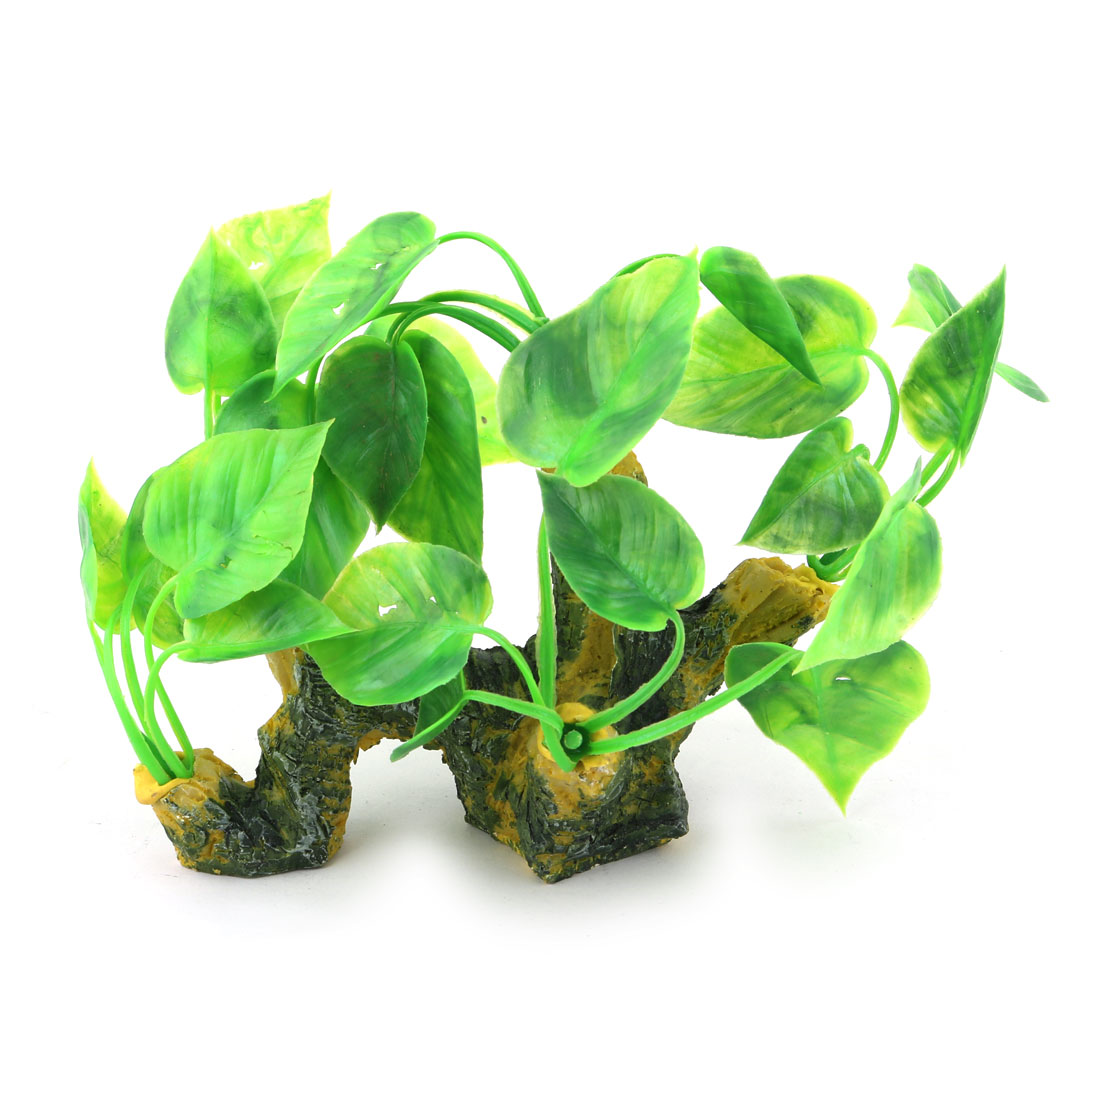 Aquarium Ceramic Base Plastic Artificial Landscap Water Grass Plant Decor Green Yellow